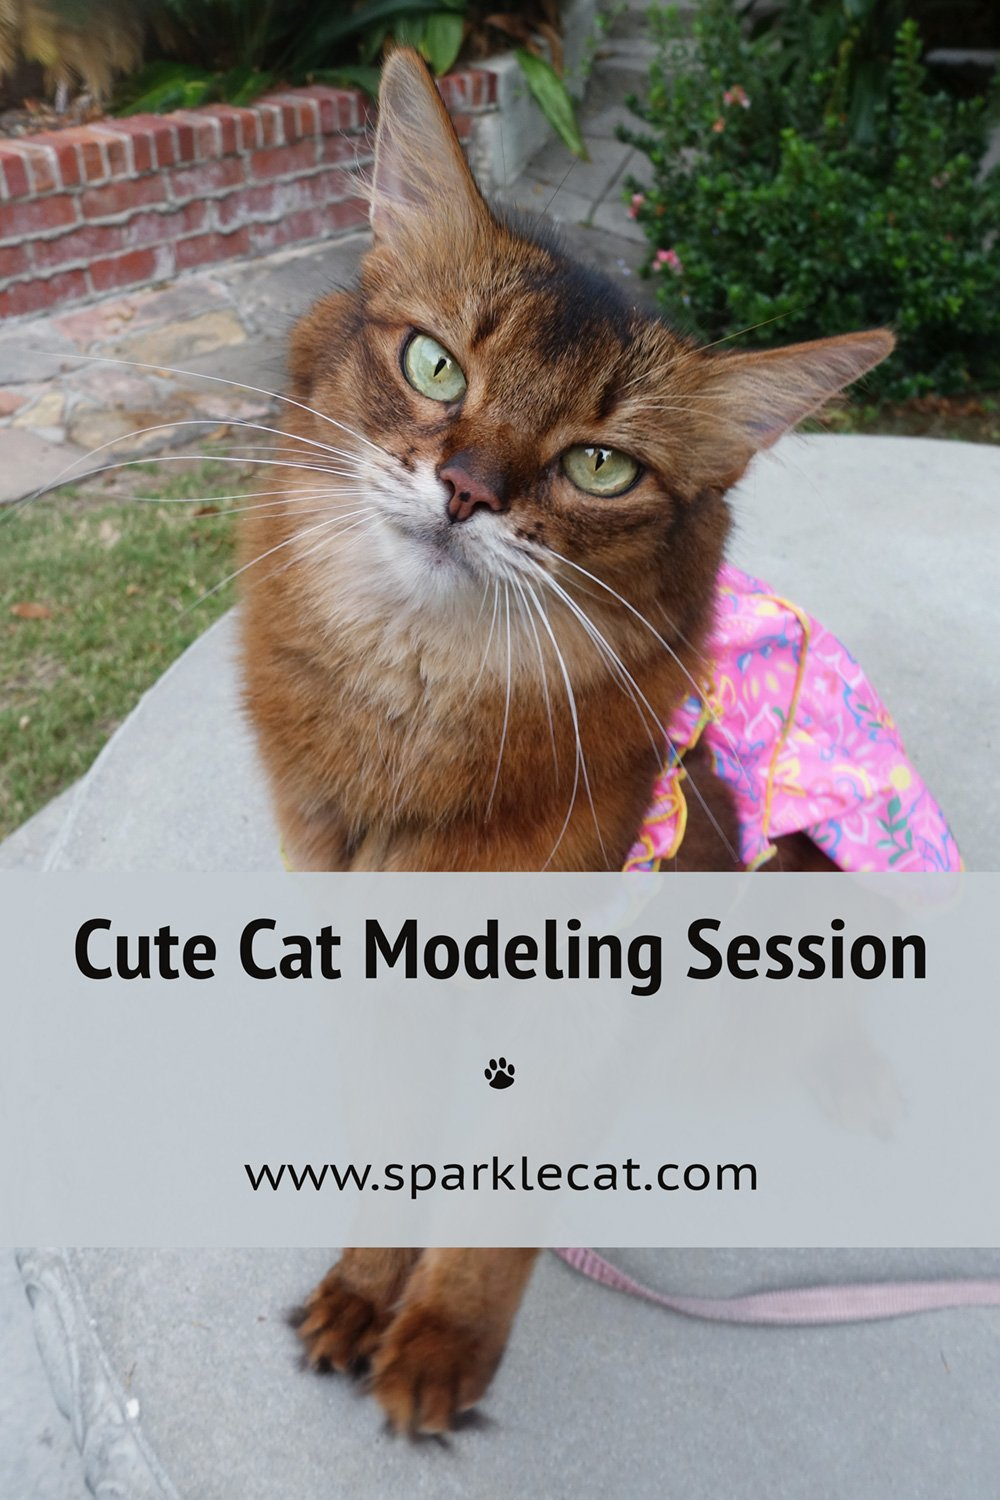 A Caturday Modeling Session